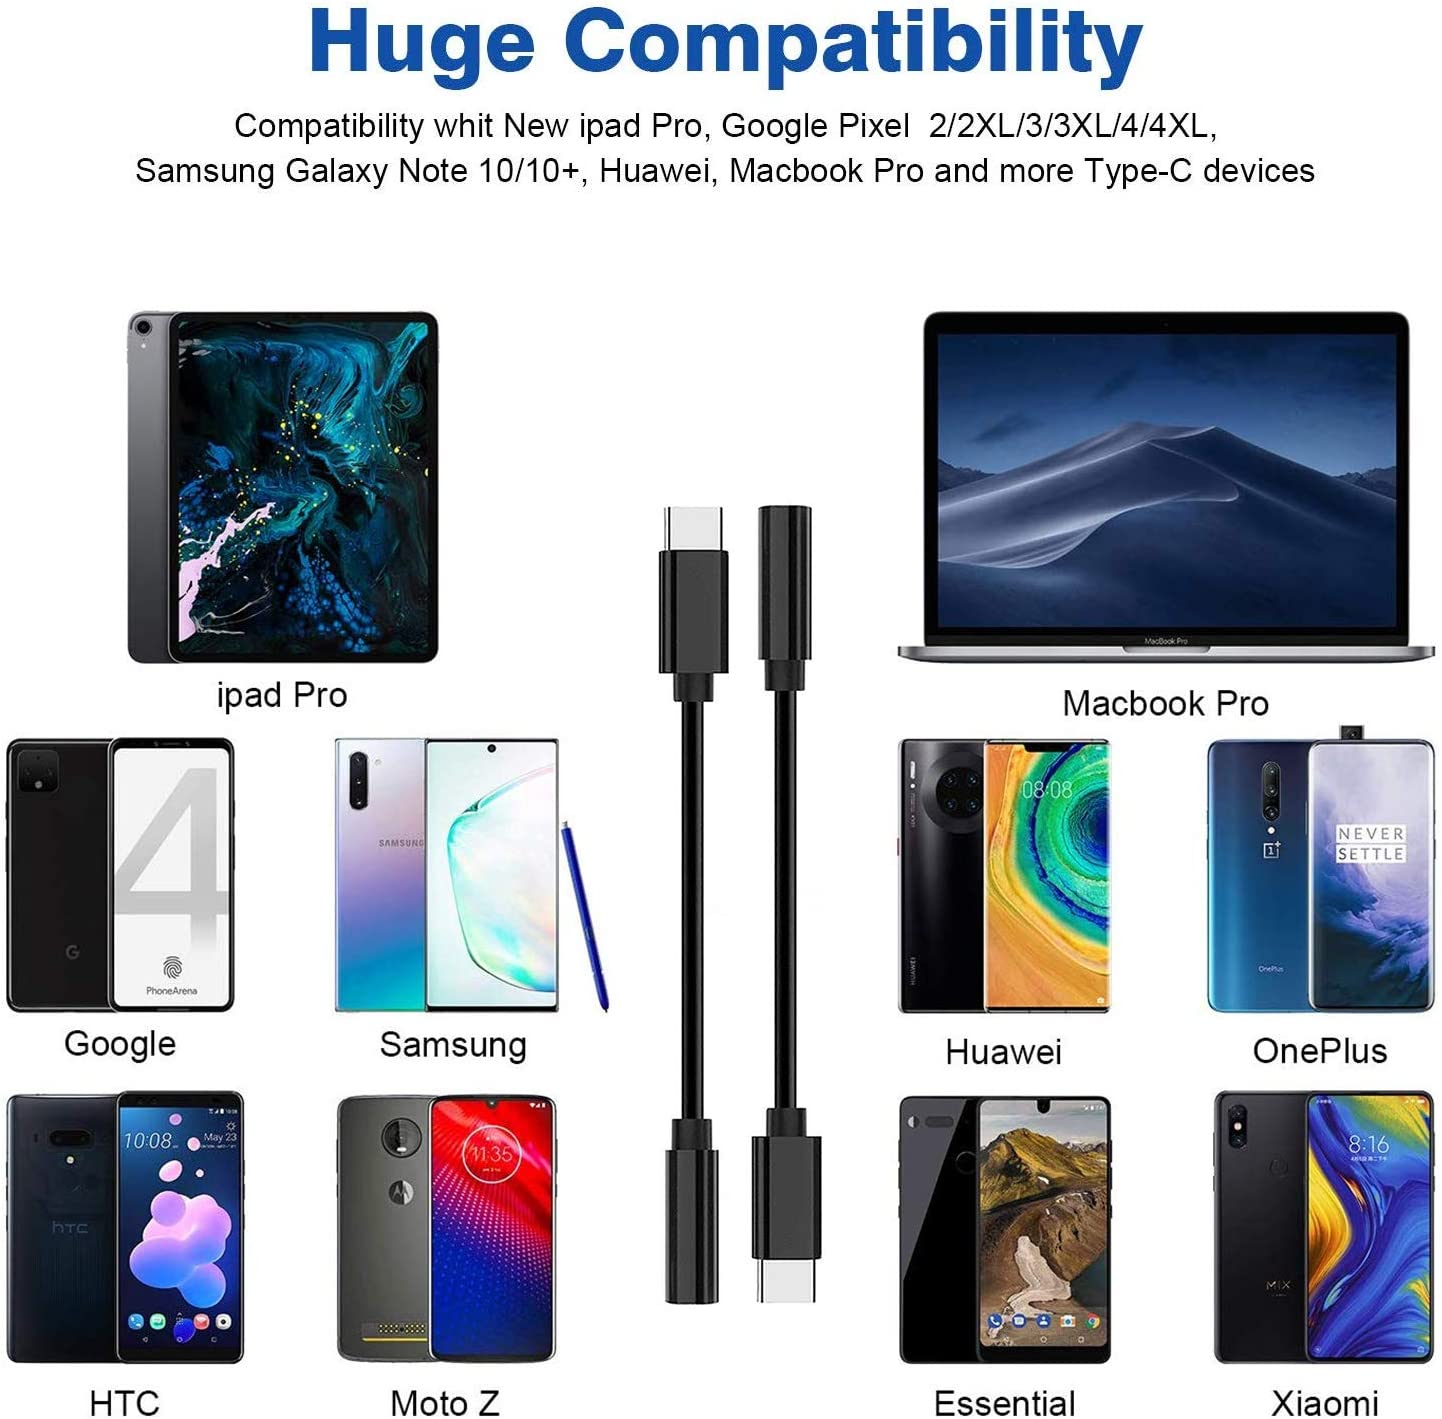 USB-C to 3.5mm Aux Audio Earphone Dongle Jack Cable Type C Adapter Connector for Huawei P30 Pro//Mate 10 Pro//iPad Pro//Google Pixel//Samsung//OnePlus-White USB-C to 3.5 mm Headphone Jack Adapter 2 Pack